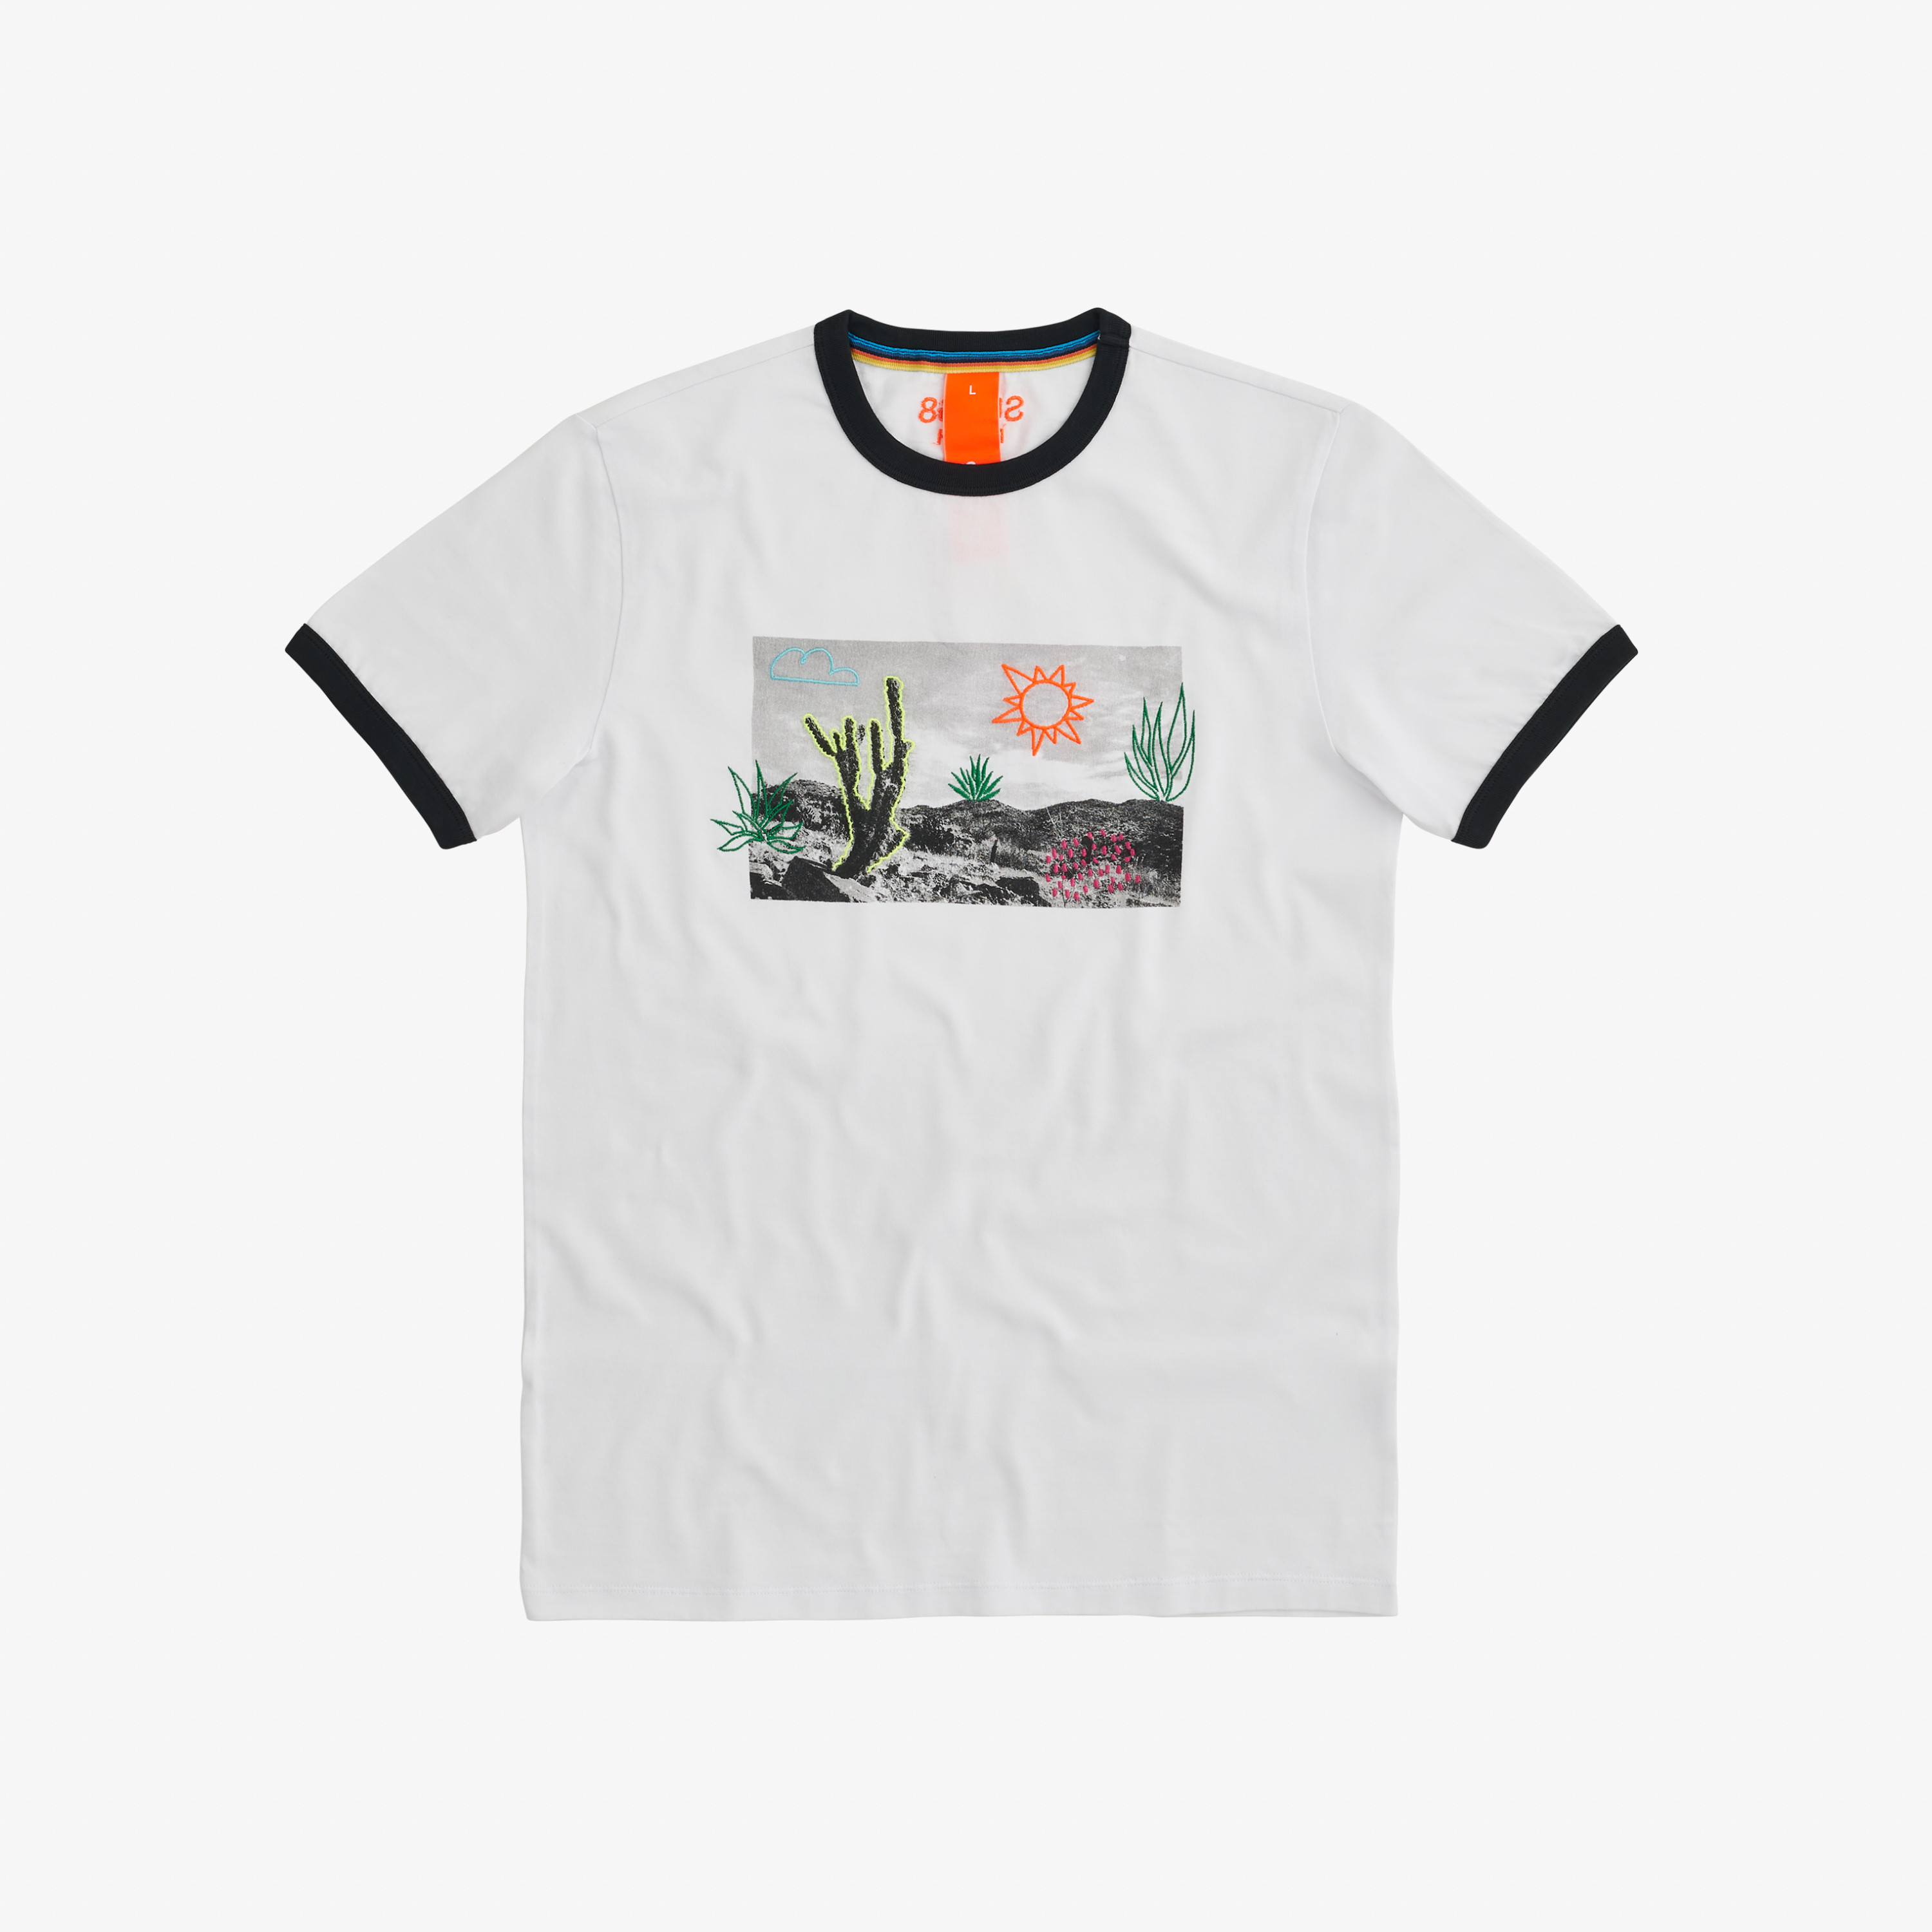 T-SHIRT FANCY PRINT BIANCO / NERO